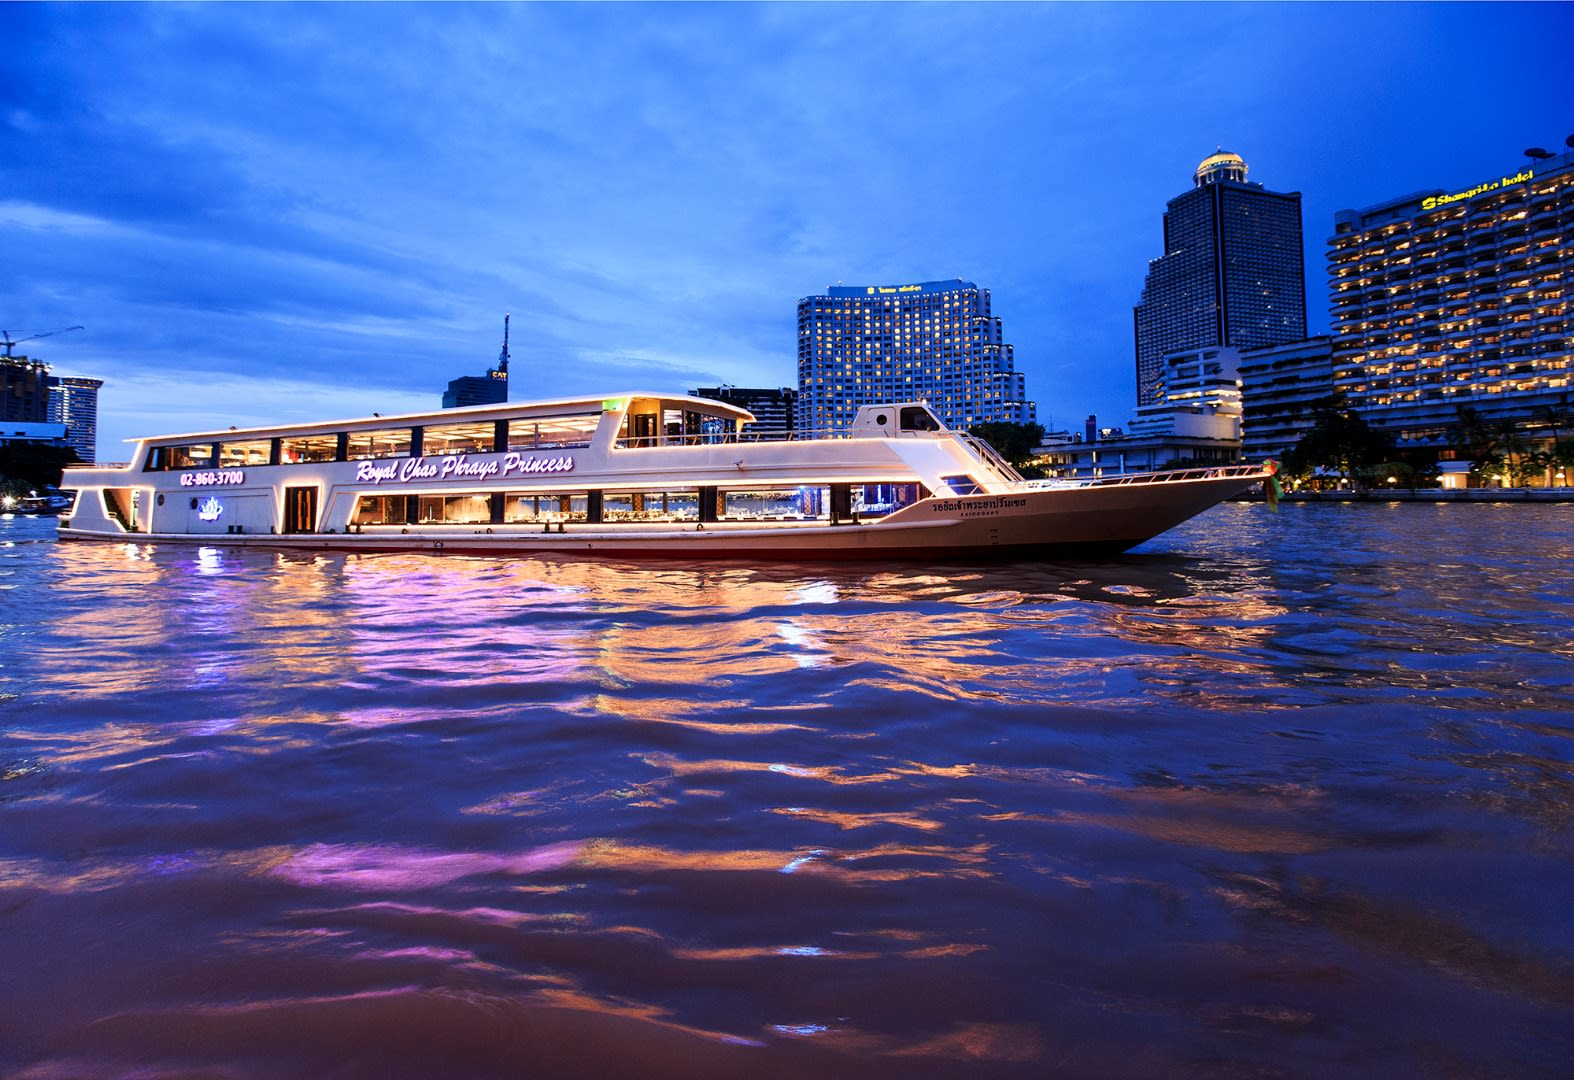 Cruise the Chap Phraya River